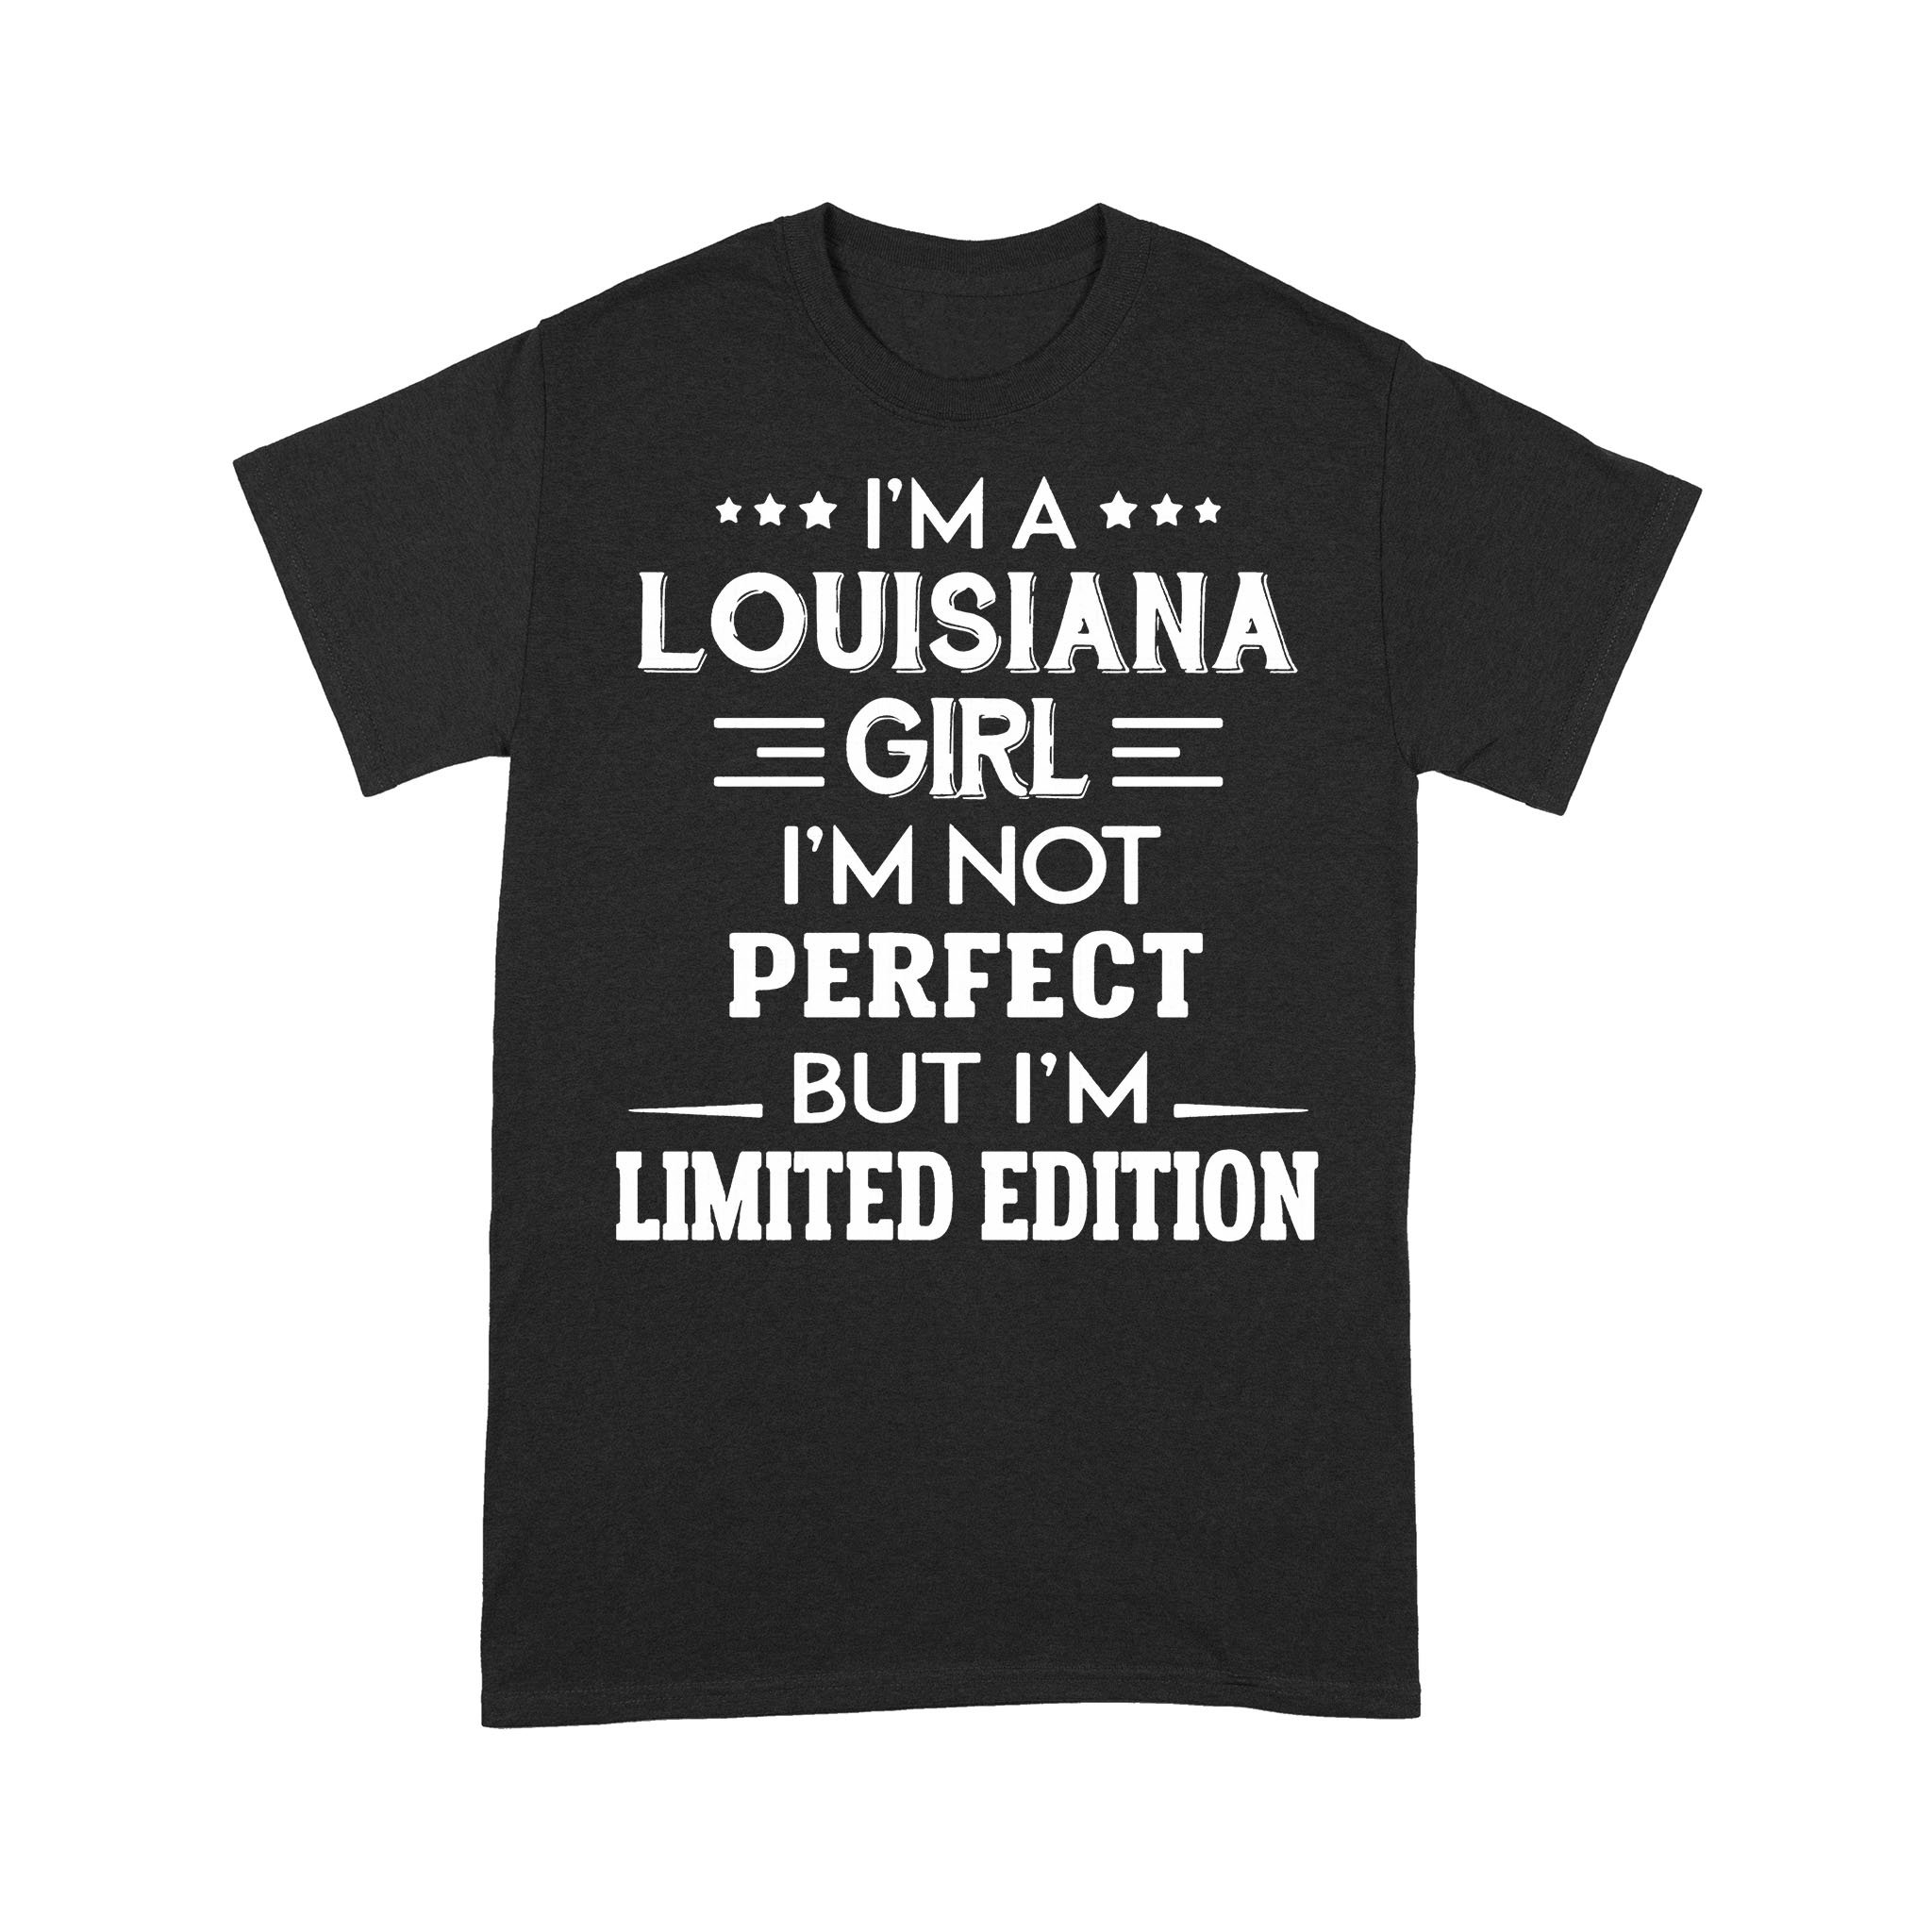 I'm A Louisiana Girl I'm Not Perfect But I'm Limited Edition T-shirt